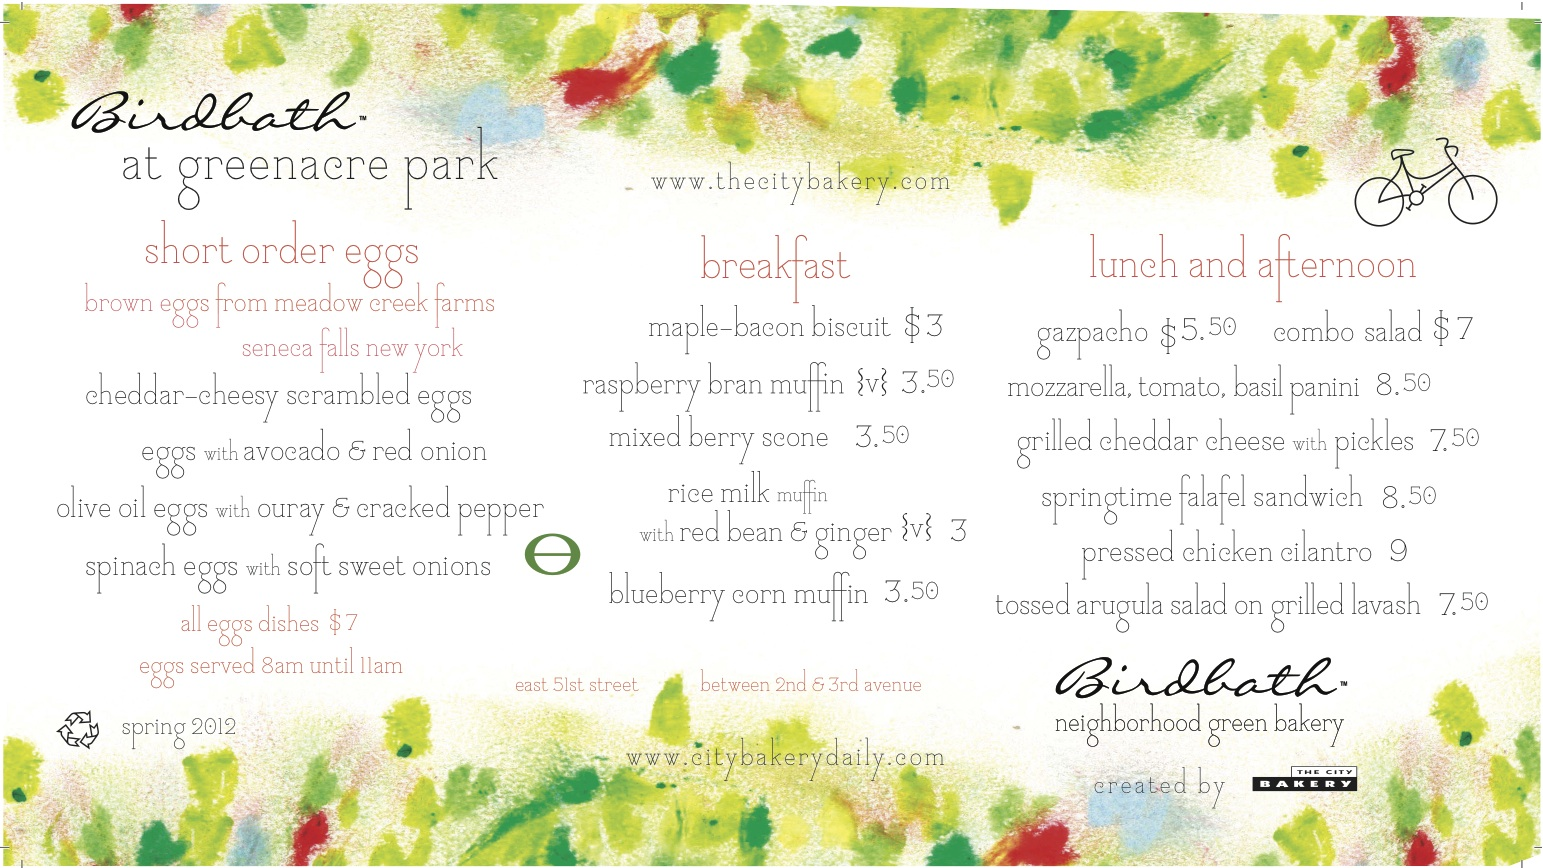 Birdbath Greenacre Spring 2012 menu.jpg